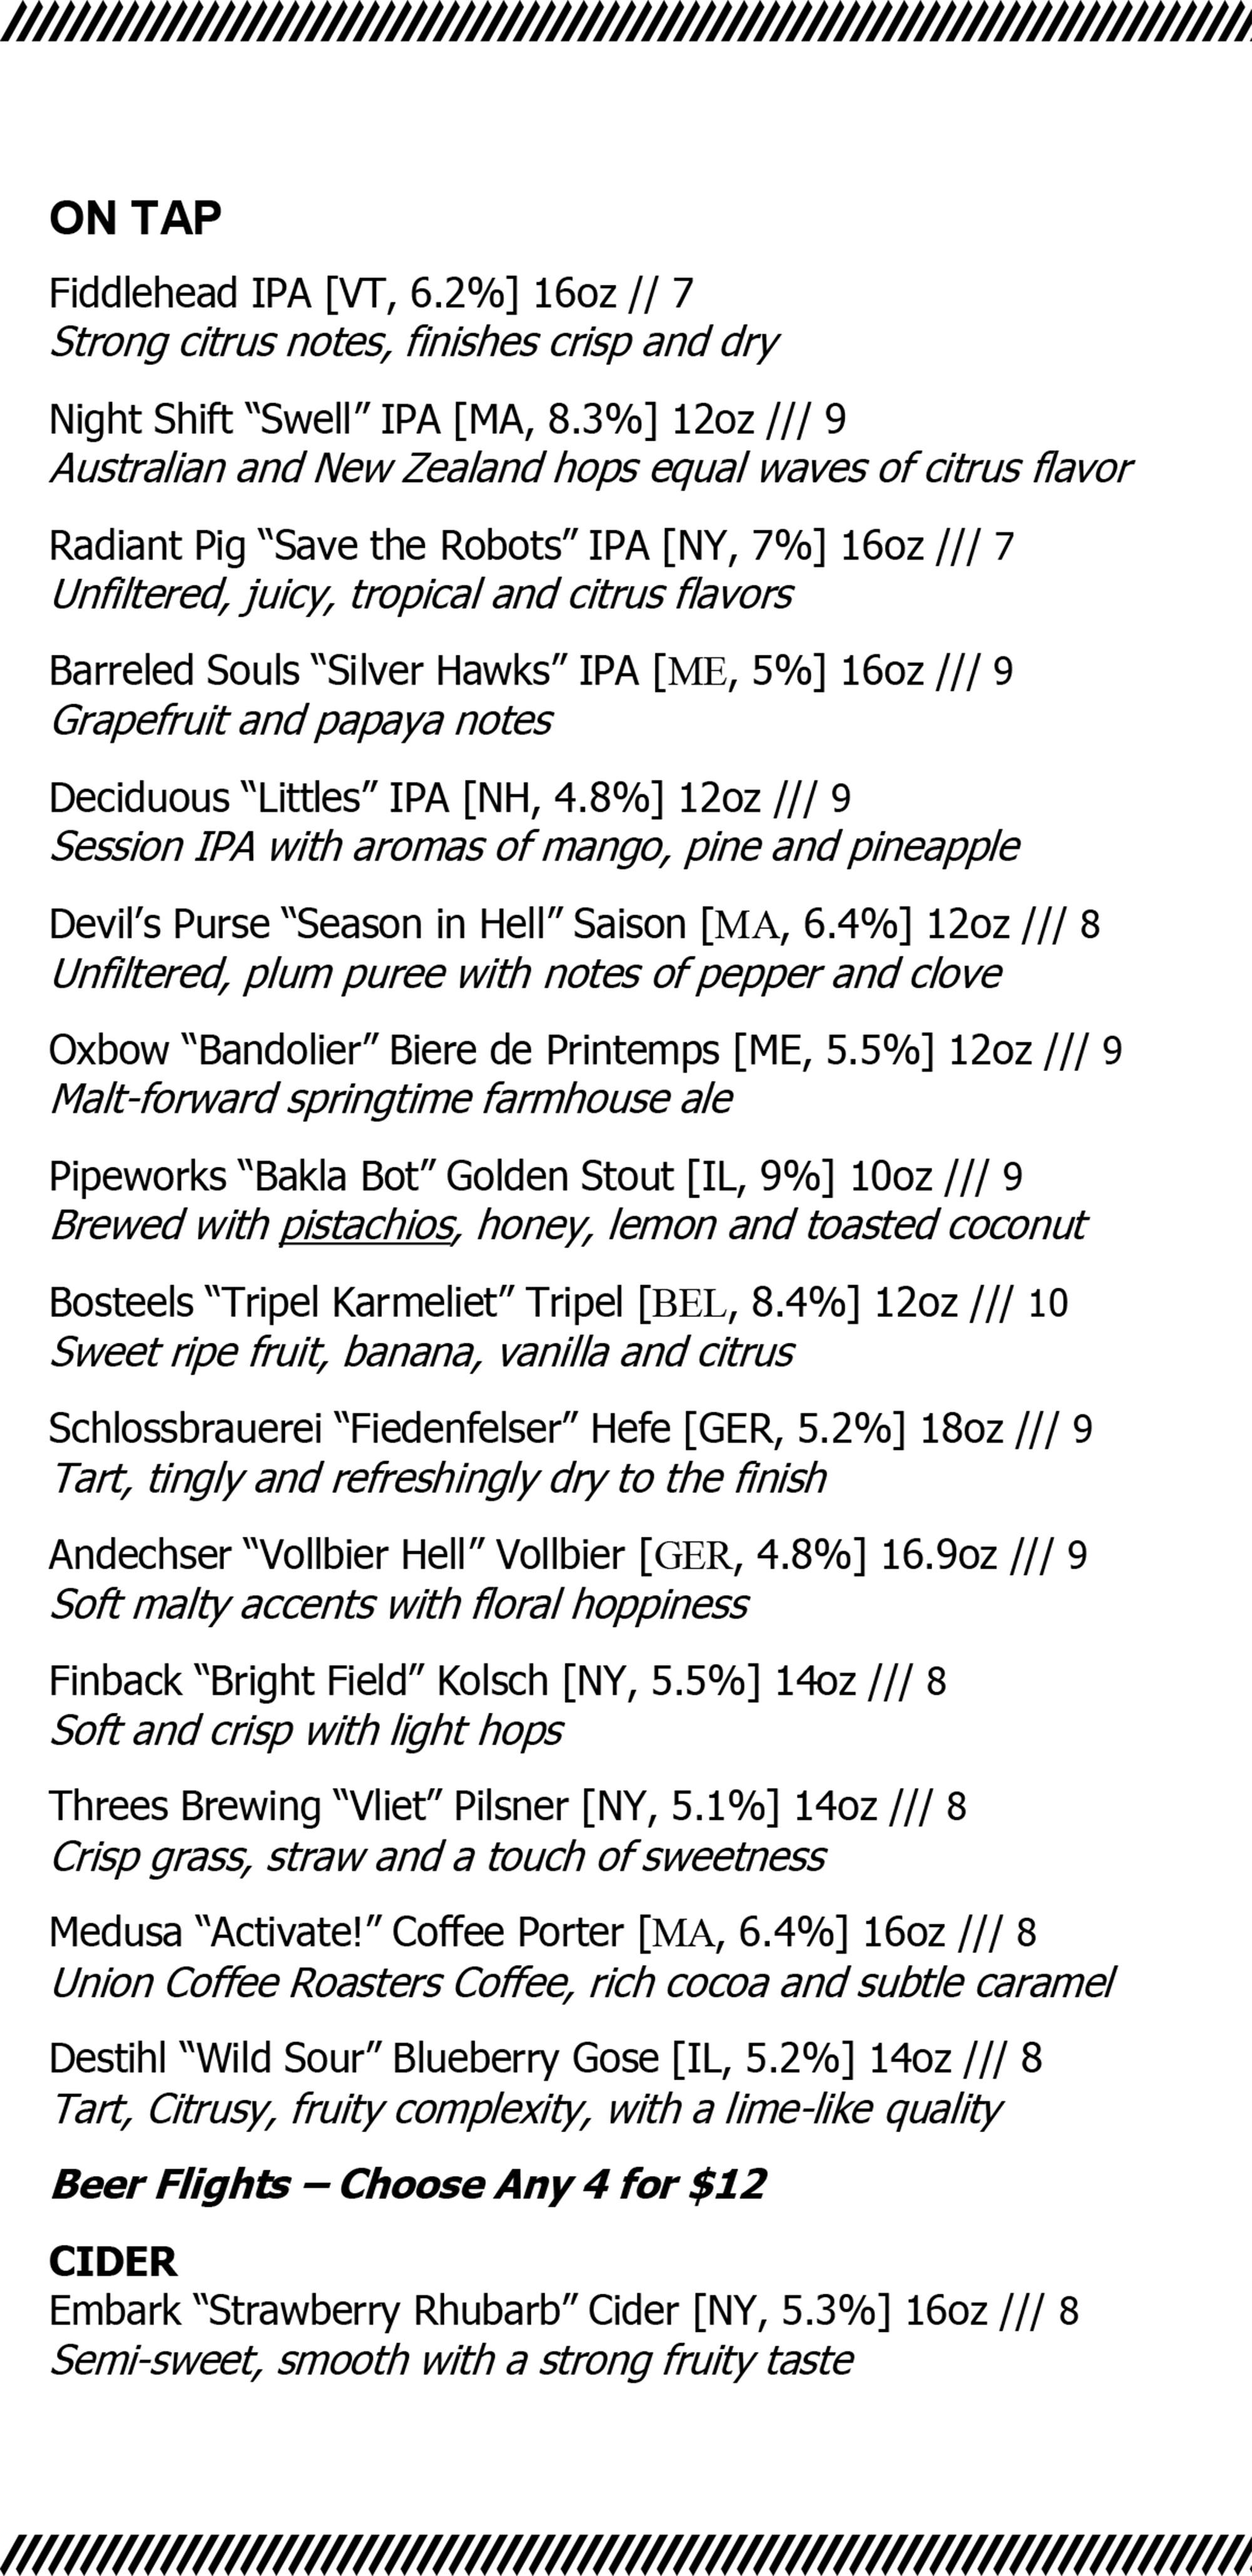 The Wellington draft beer and cider list